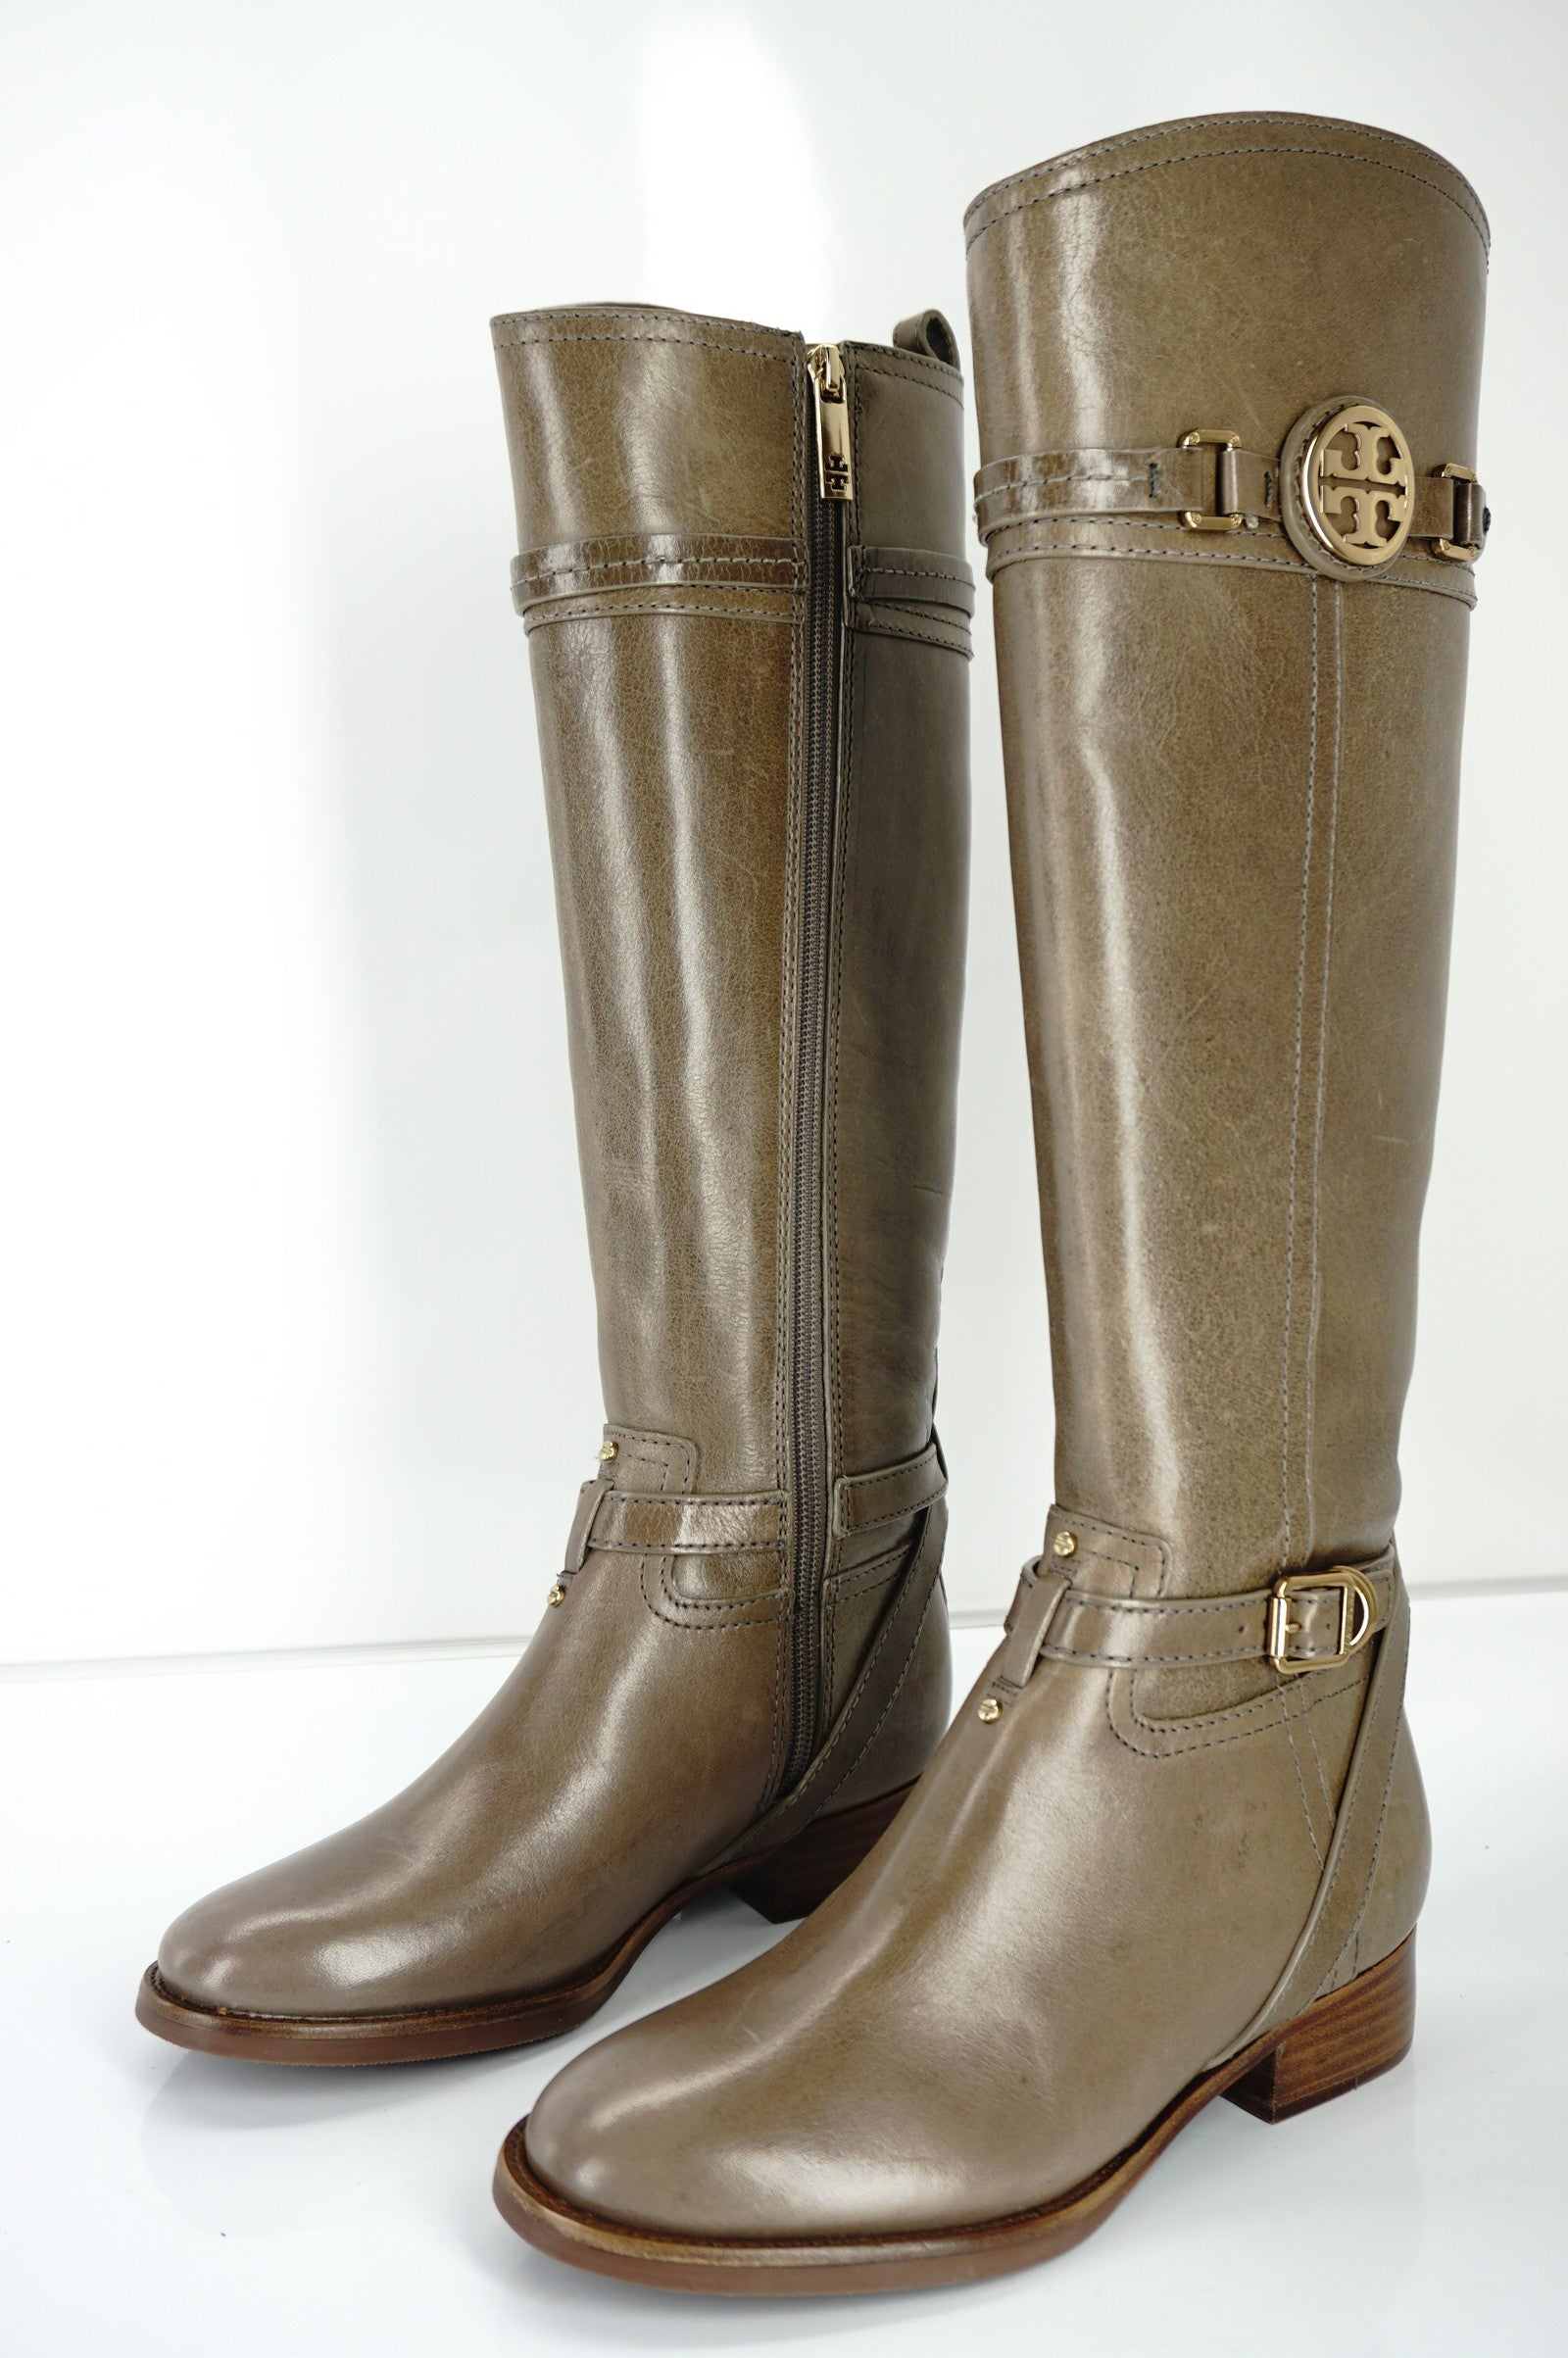 Tory Burch Calista Taupe Leather Logo Belt Knee Riding Boots SZ 5 New $495